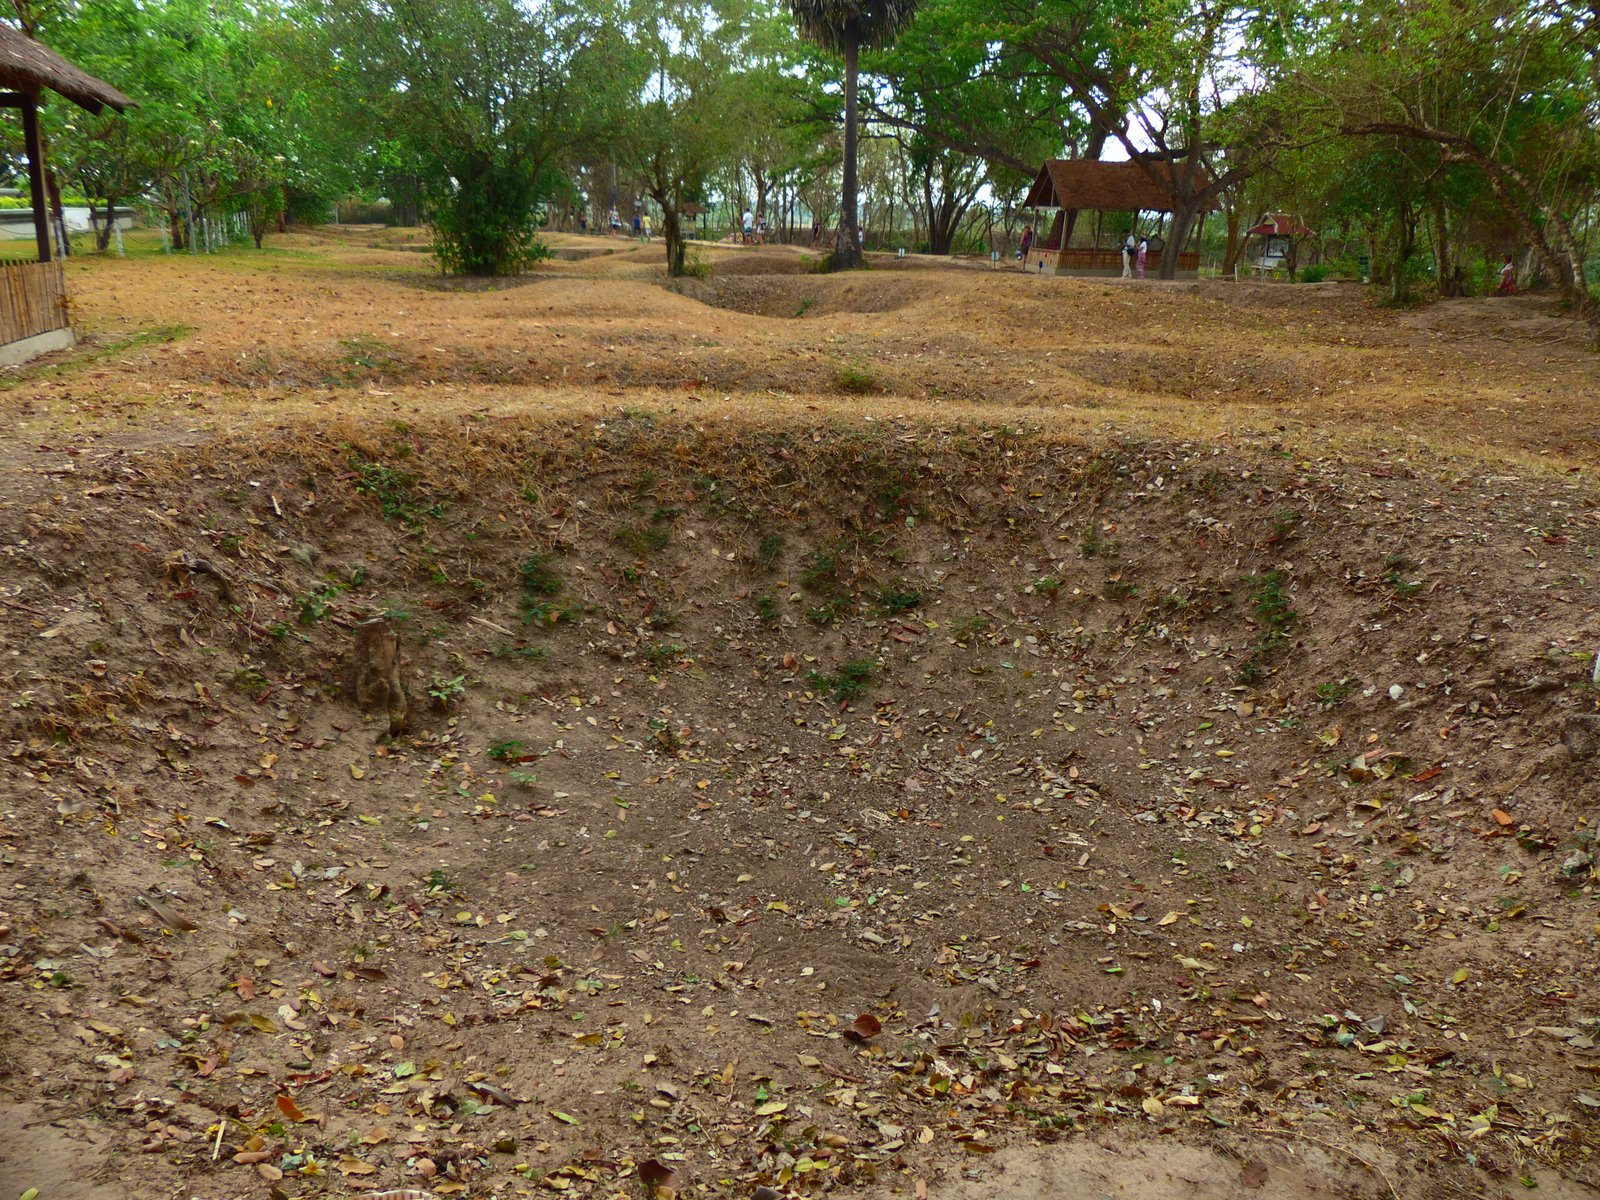 Mass graves at the Killing Field of Cheoung Ek. An estimated 17,000 victims were executed on this field and buried here in mass graves.